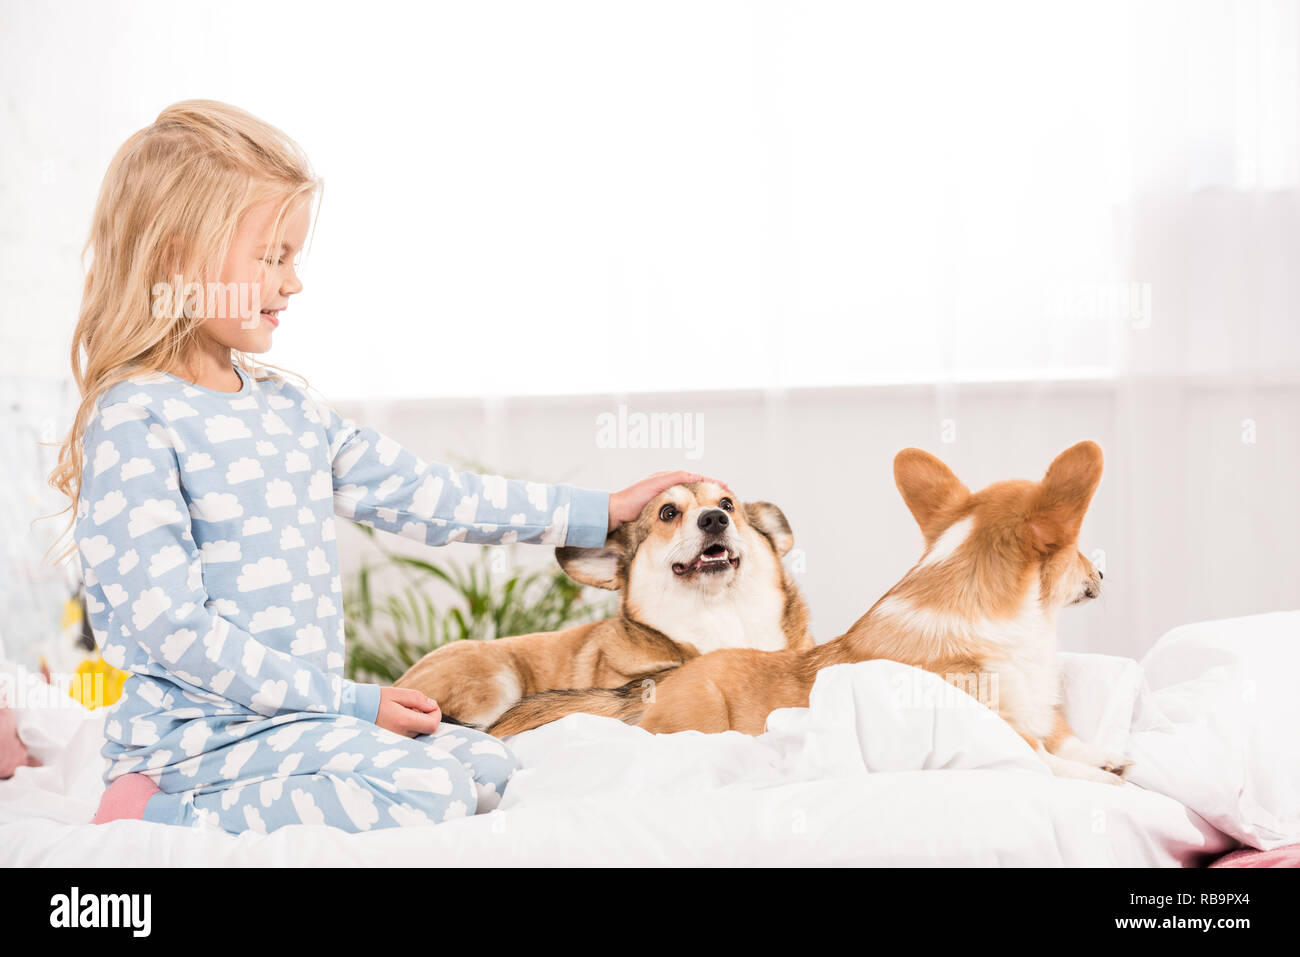 adorable smiling child in pajamas petting corgi dogs in bed - Stock Image